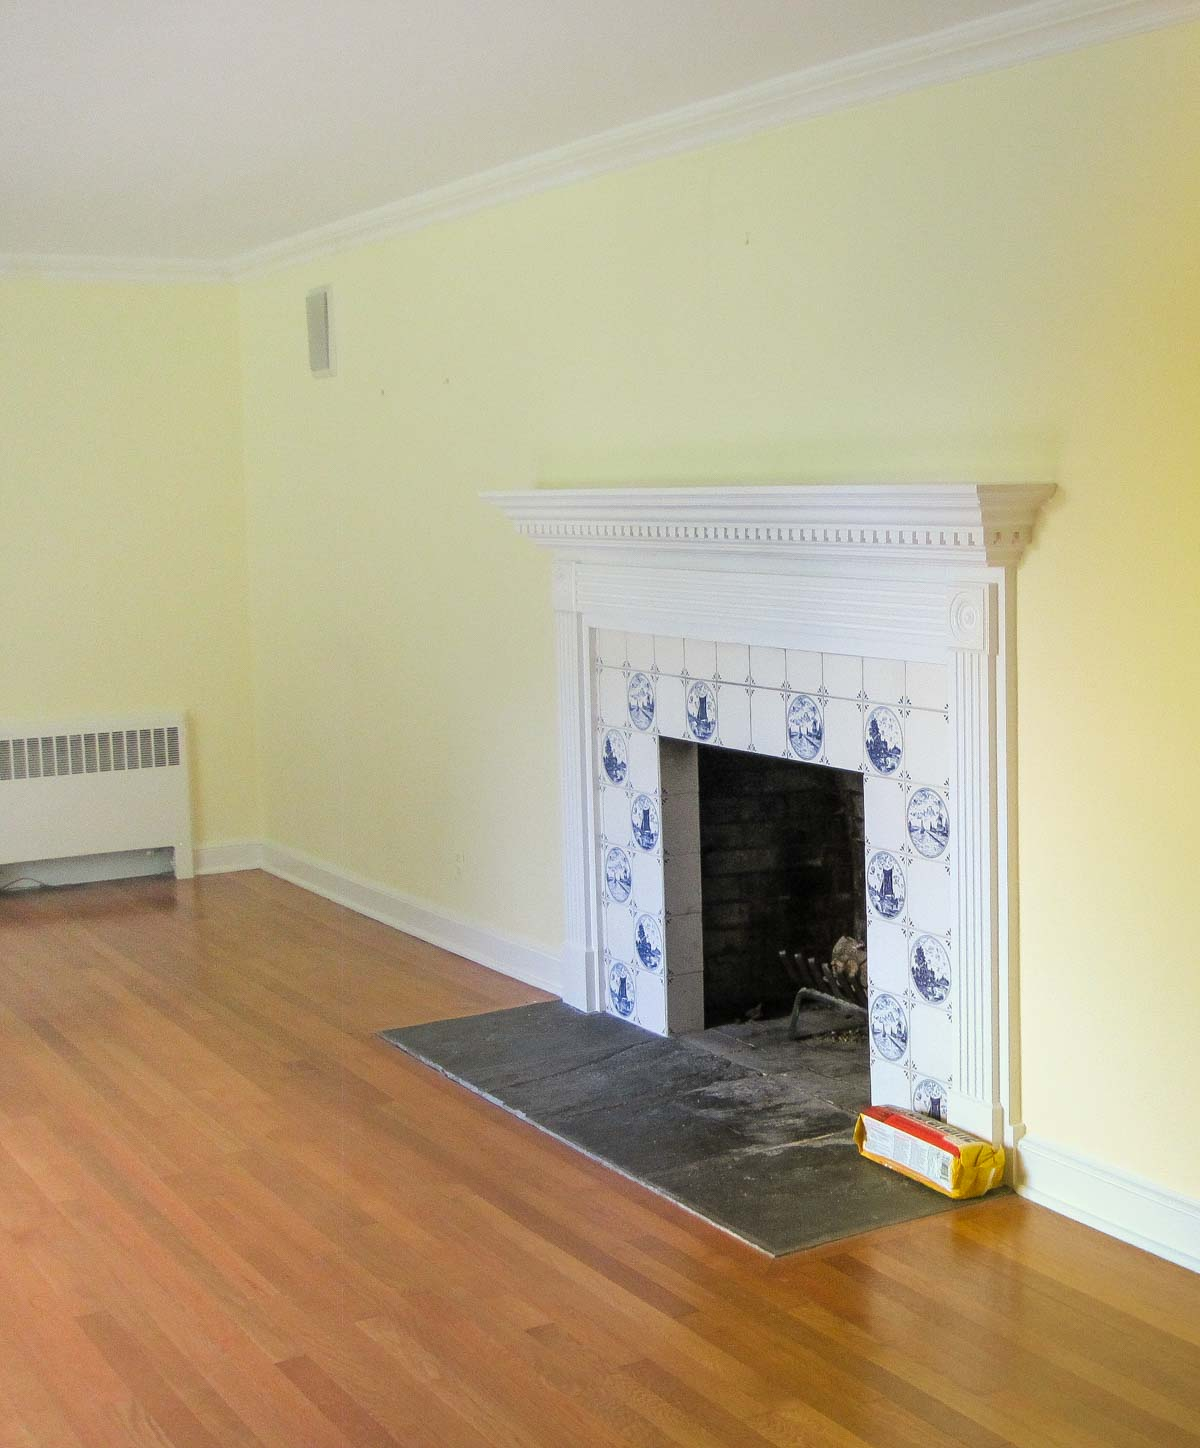 Home remodel: Our living room before remodeling!